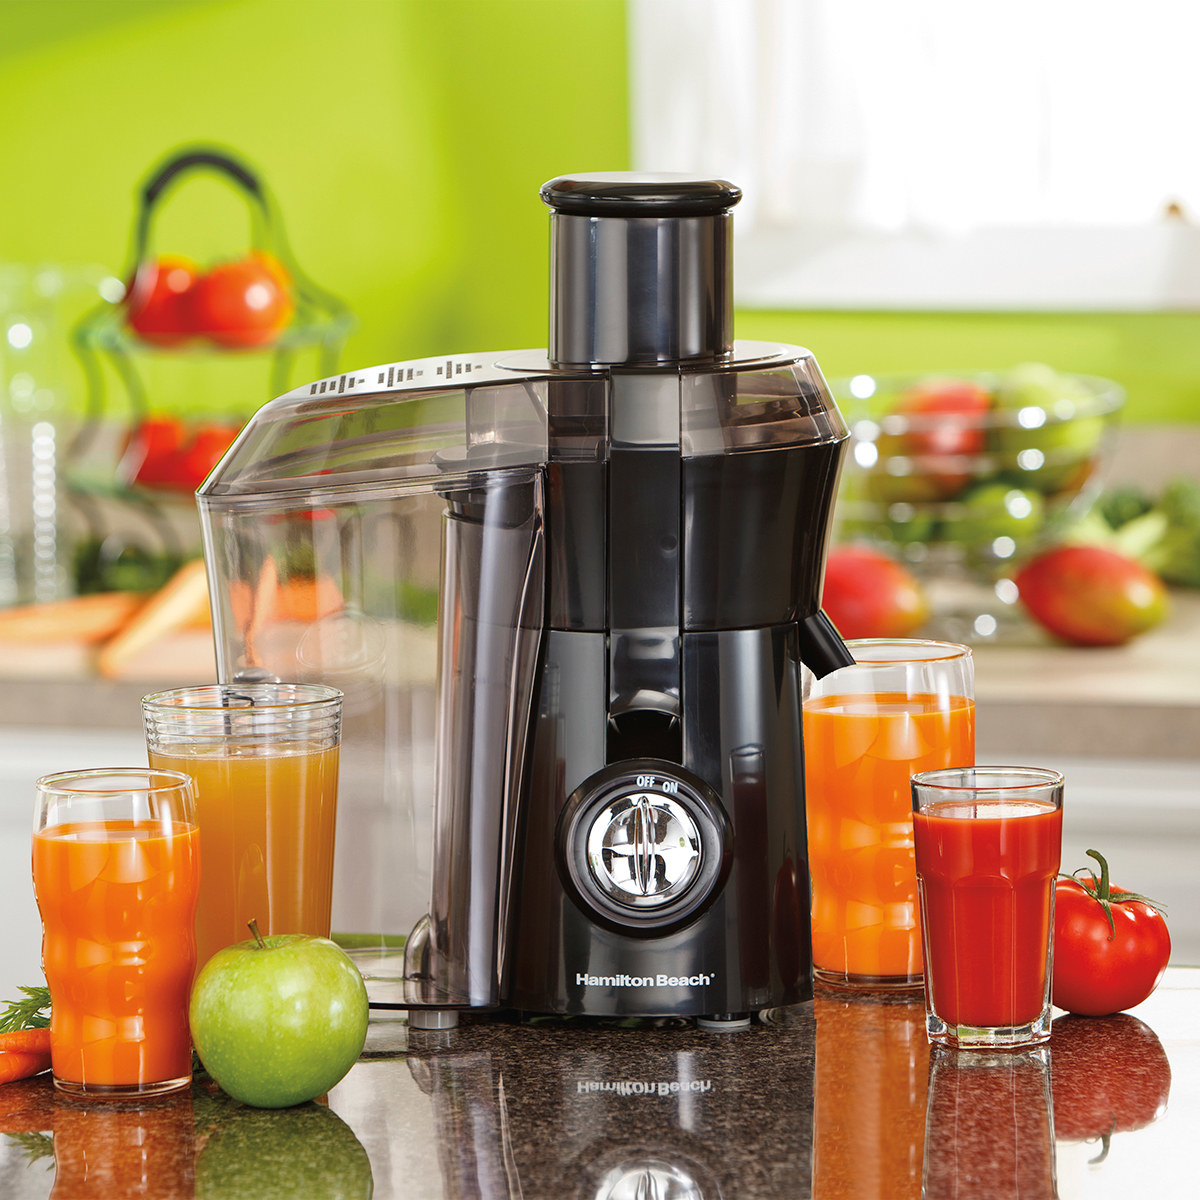 The juice extractor on a counter surrounded by cups of different juice as well as apples and tomatoes